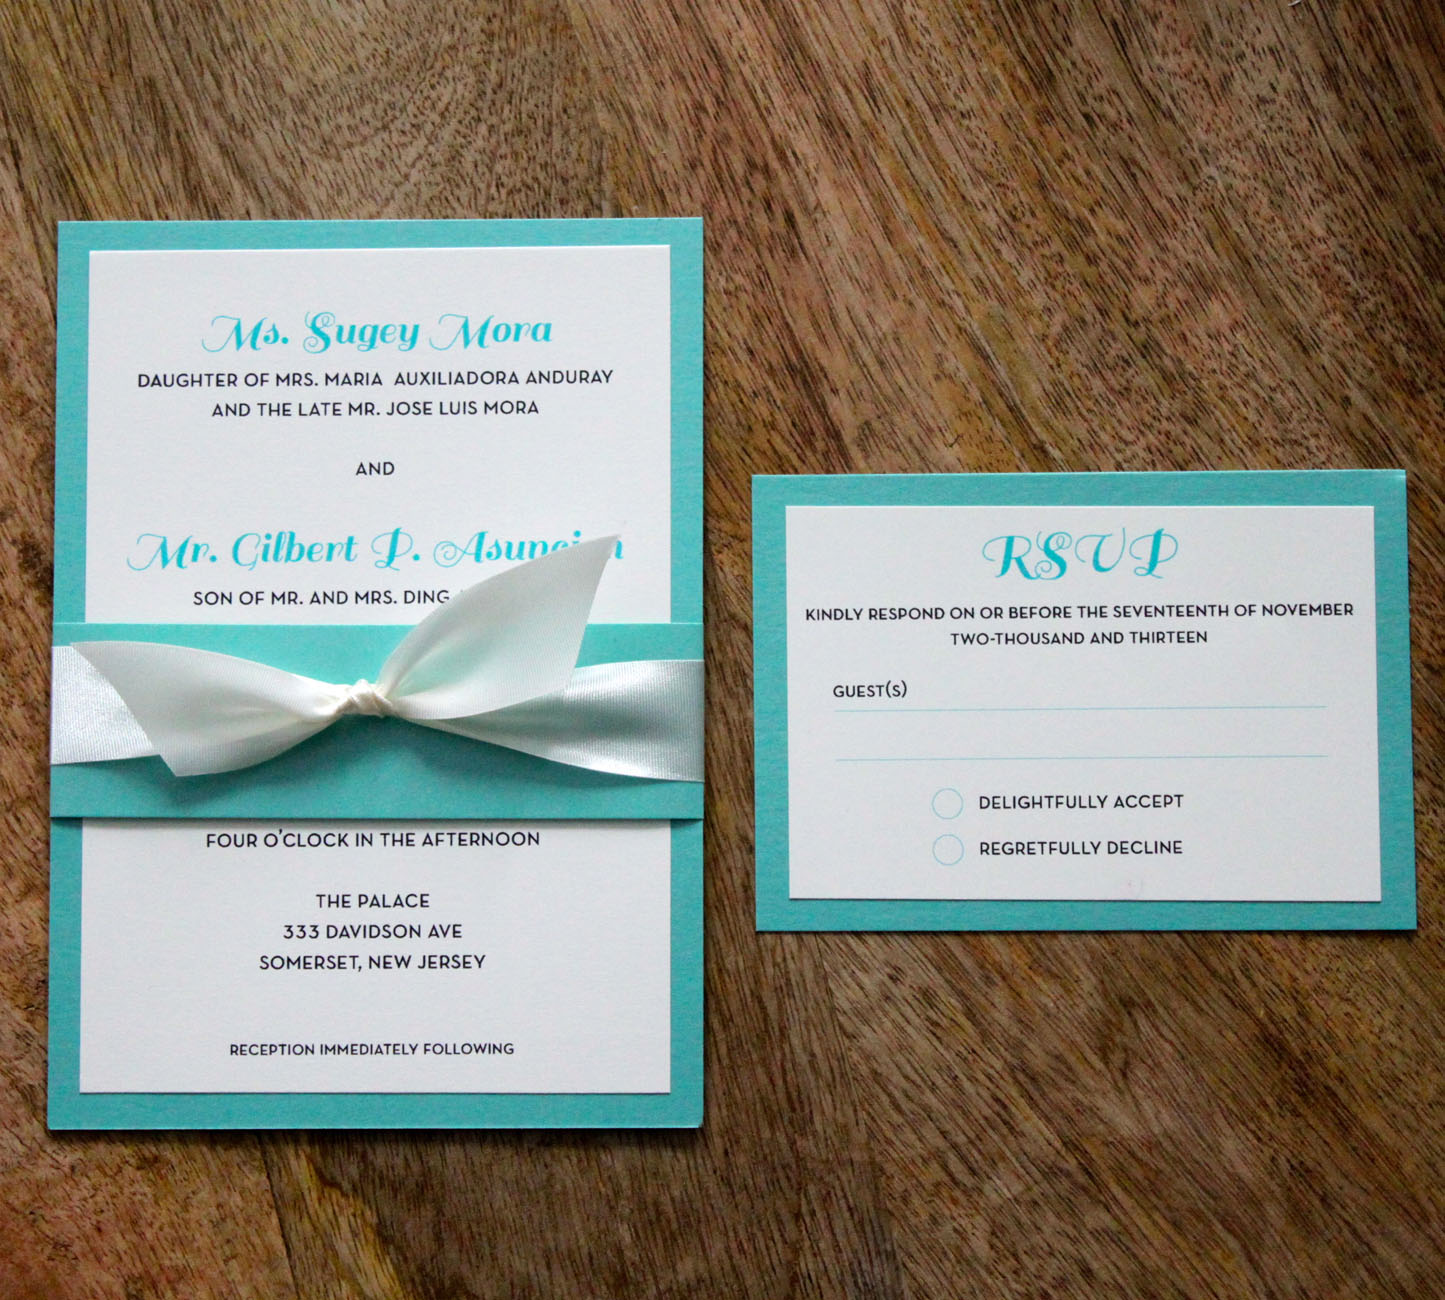 tiffany green wedding invitations tiffany blue wedding invitations Tiffany Green Wedding Invitations Inspiring Card